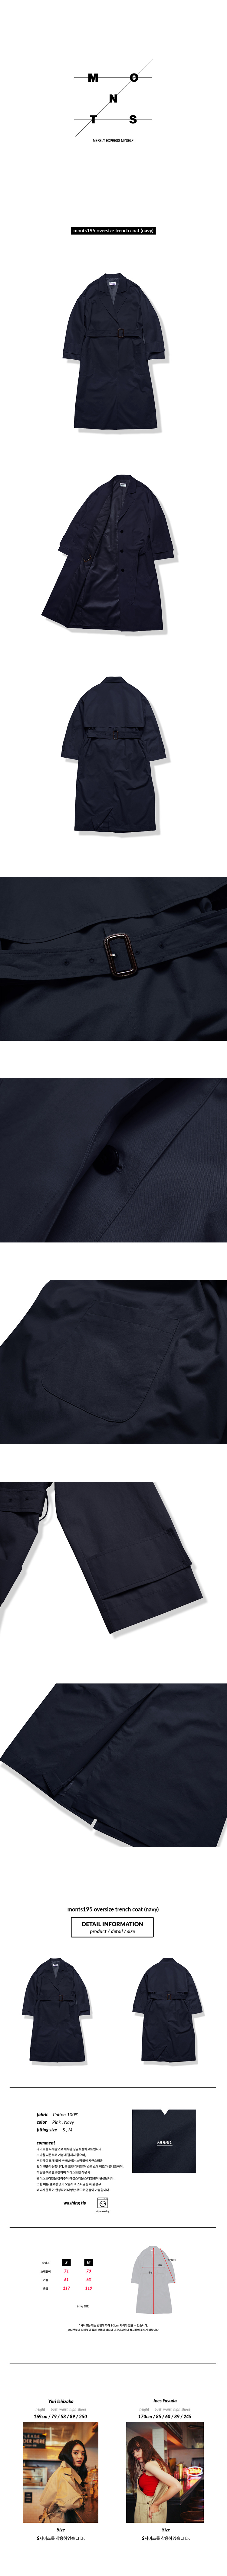 몬츠(MONTS) monts195 oversize trench coat (navy)